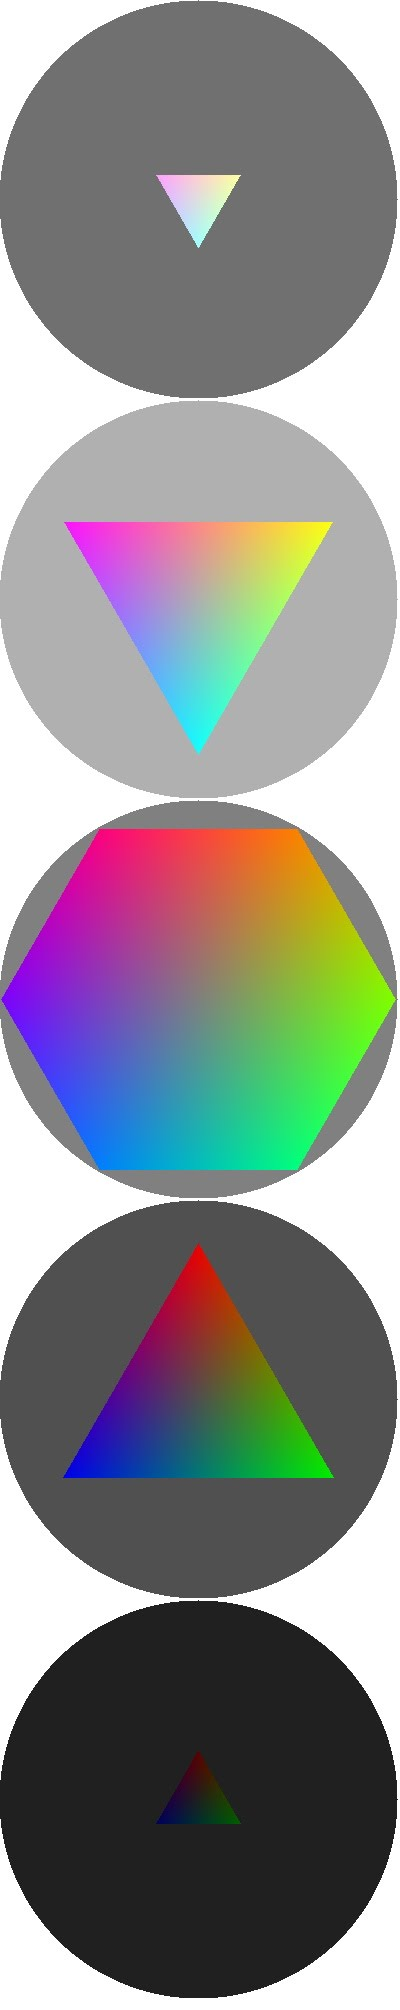 RGB(W) color wheels at W= 32,80, 128, 176, 224